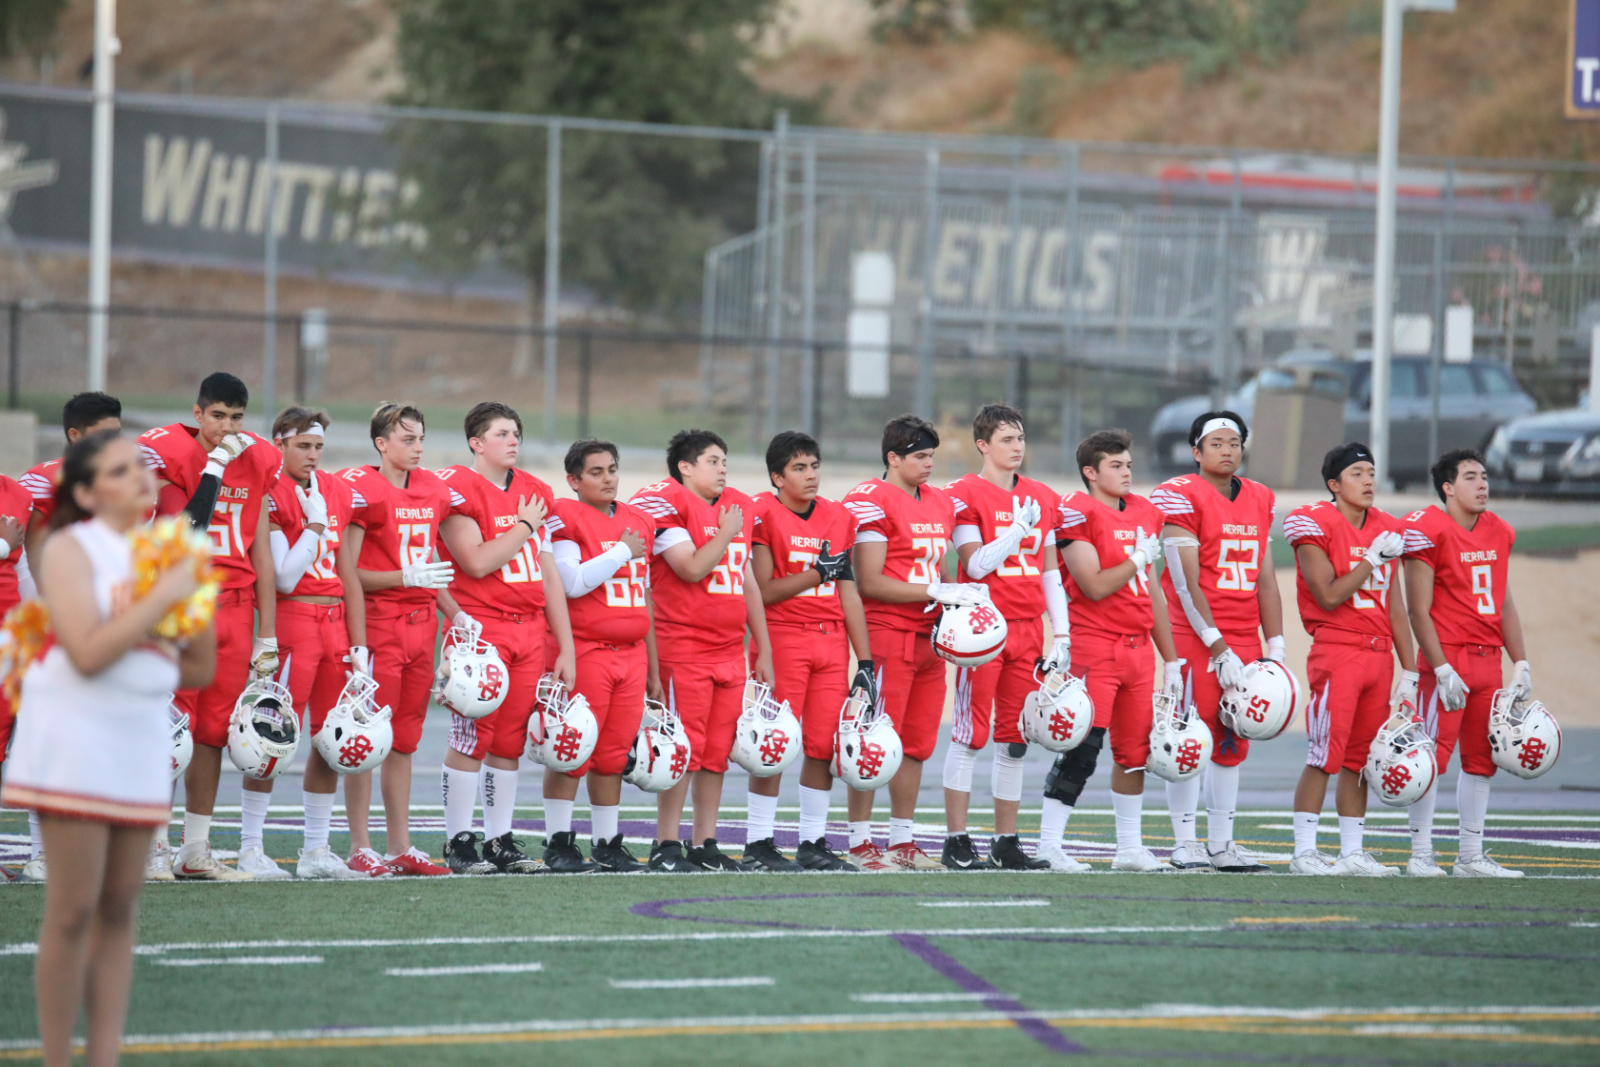 WCHS Football vs. Cantwell Pictures (Volume 1)